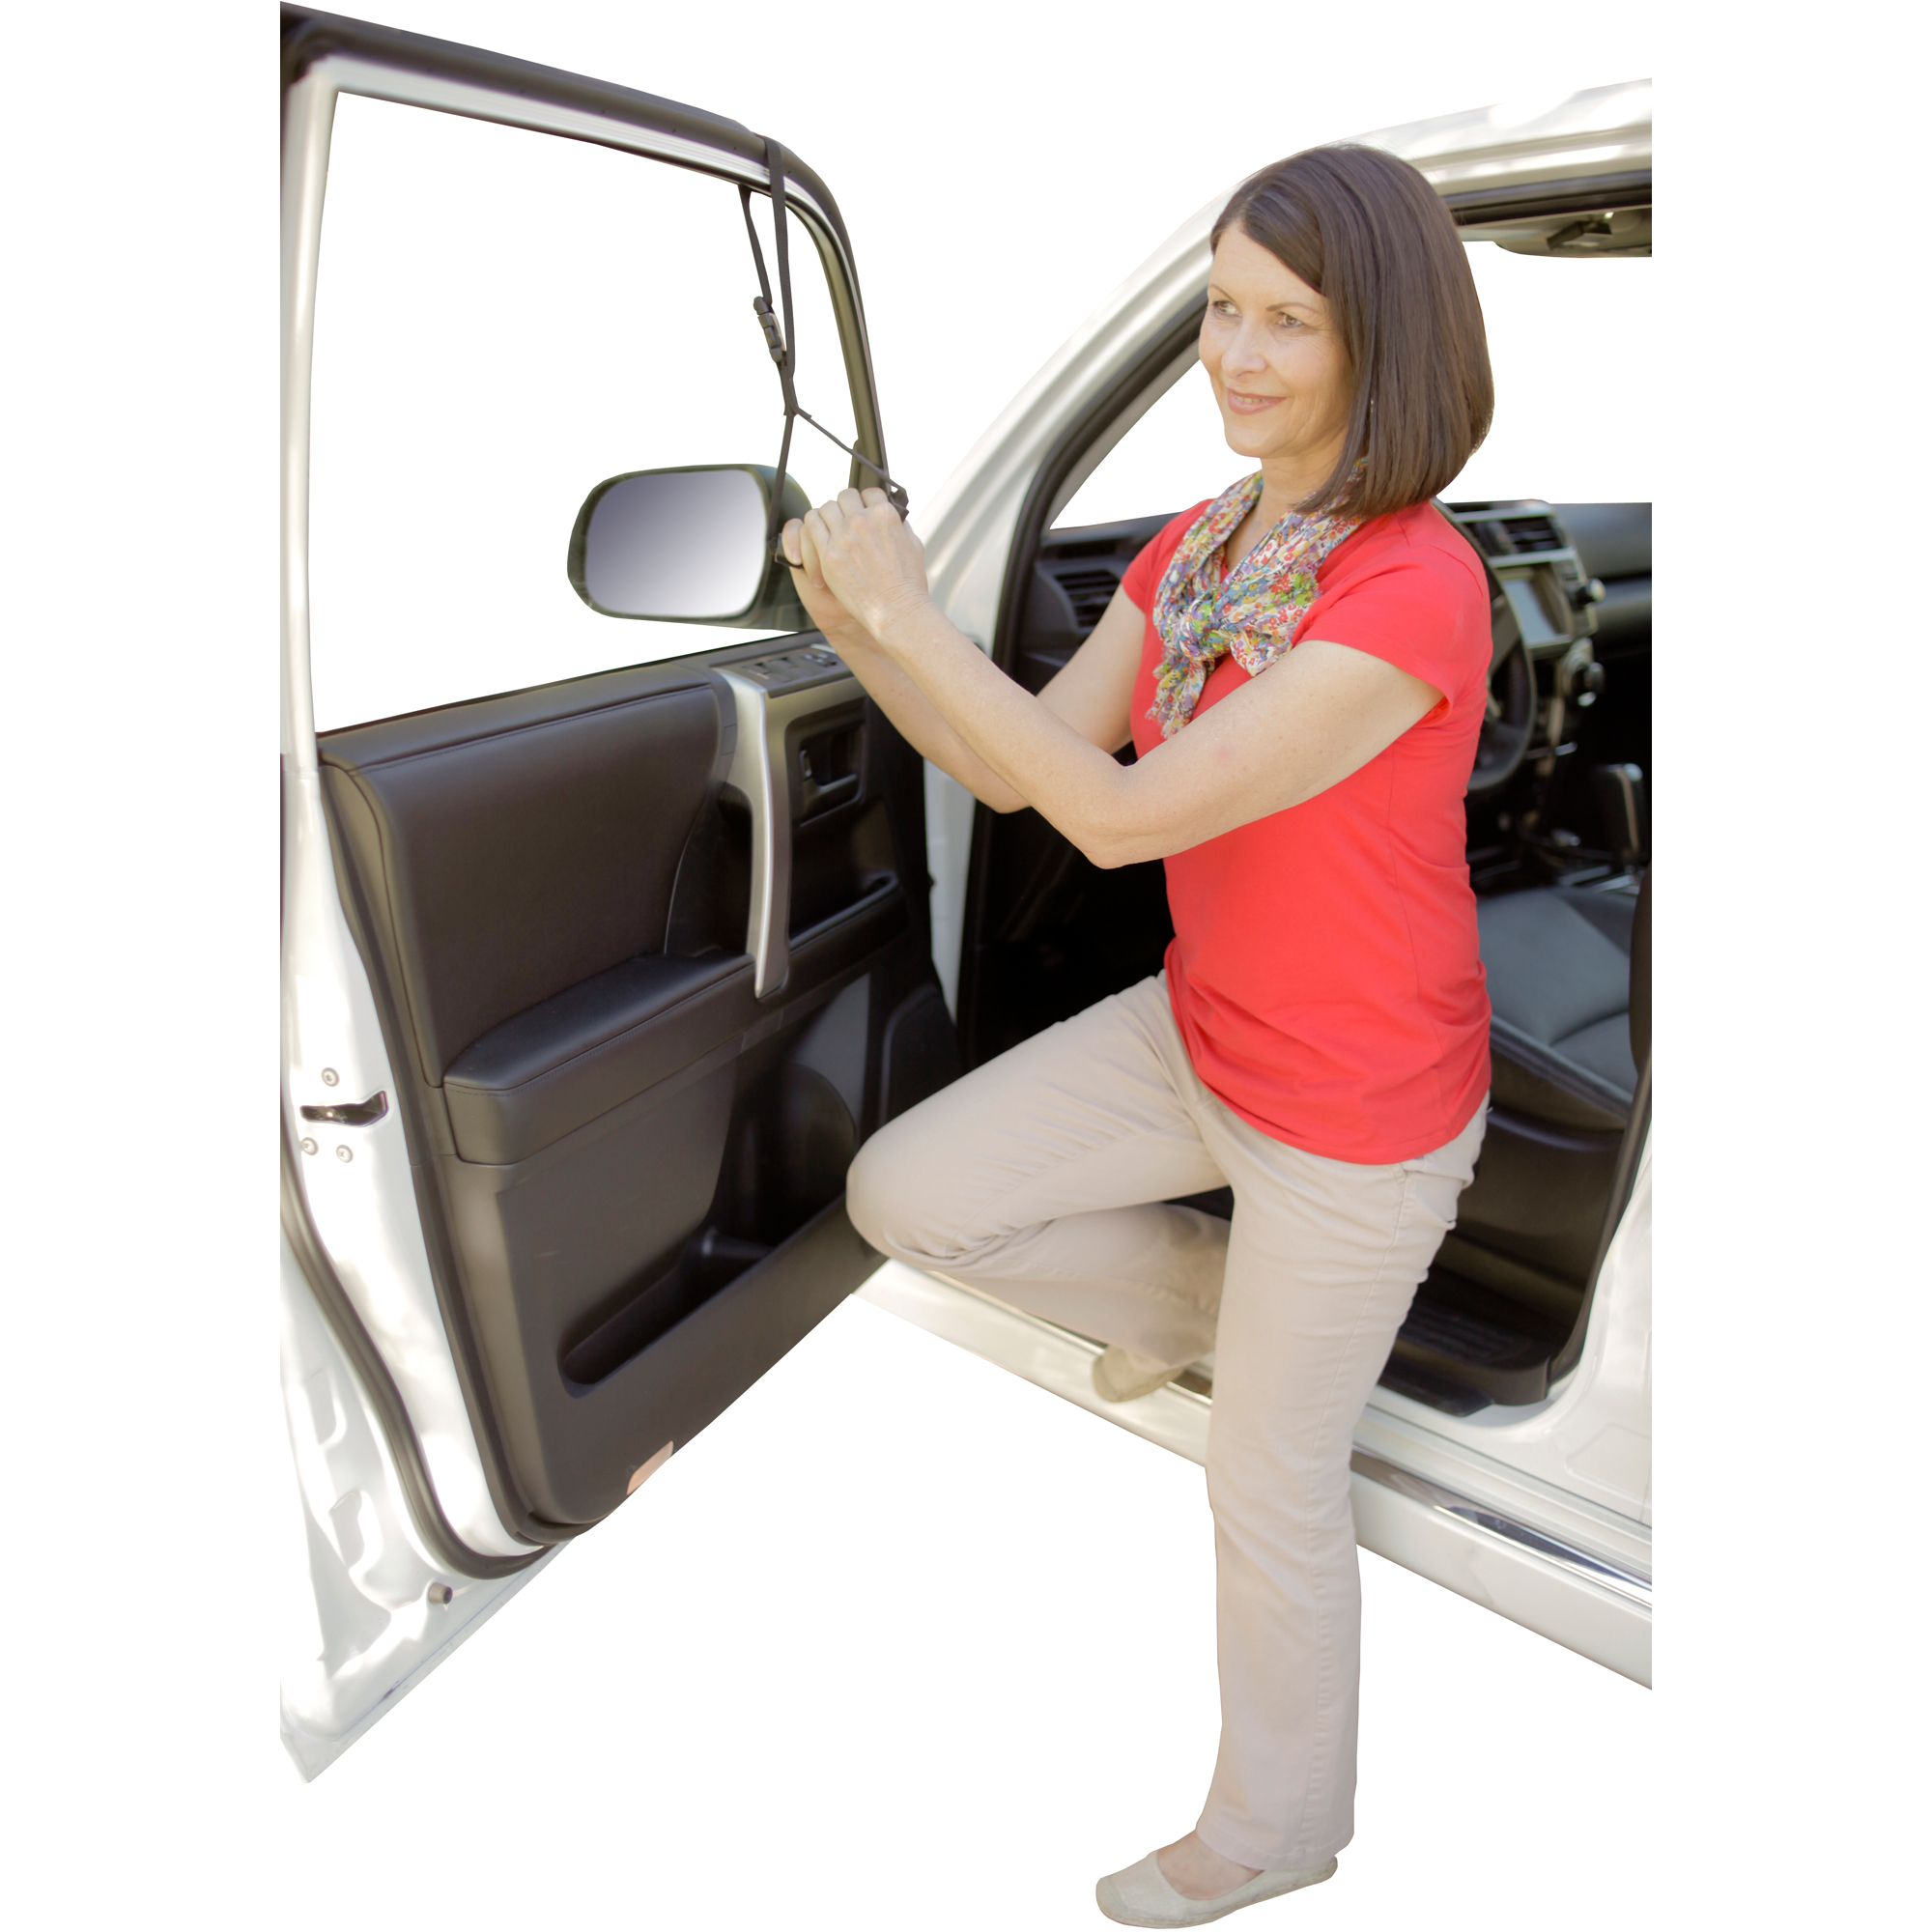 Image of Able Life Auto Assist Handle - Adjustable Vehicle Support Handle